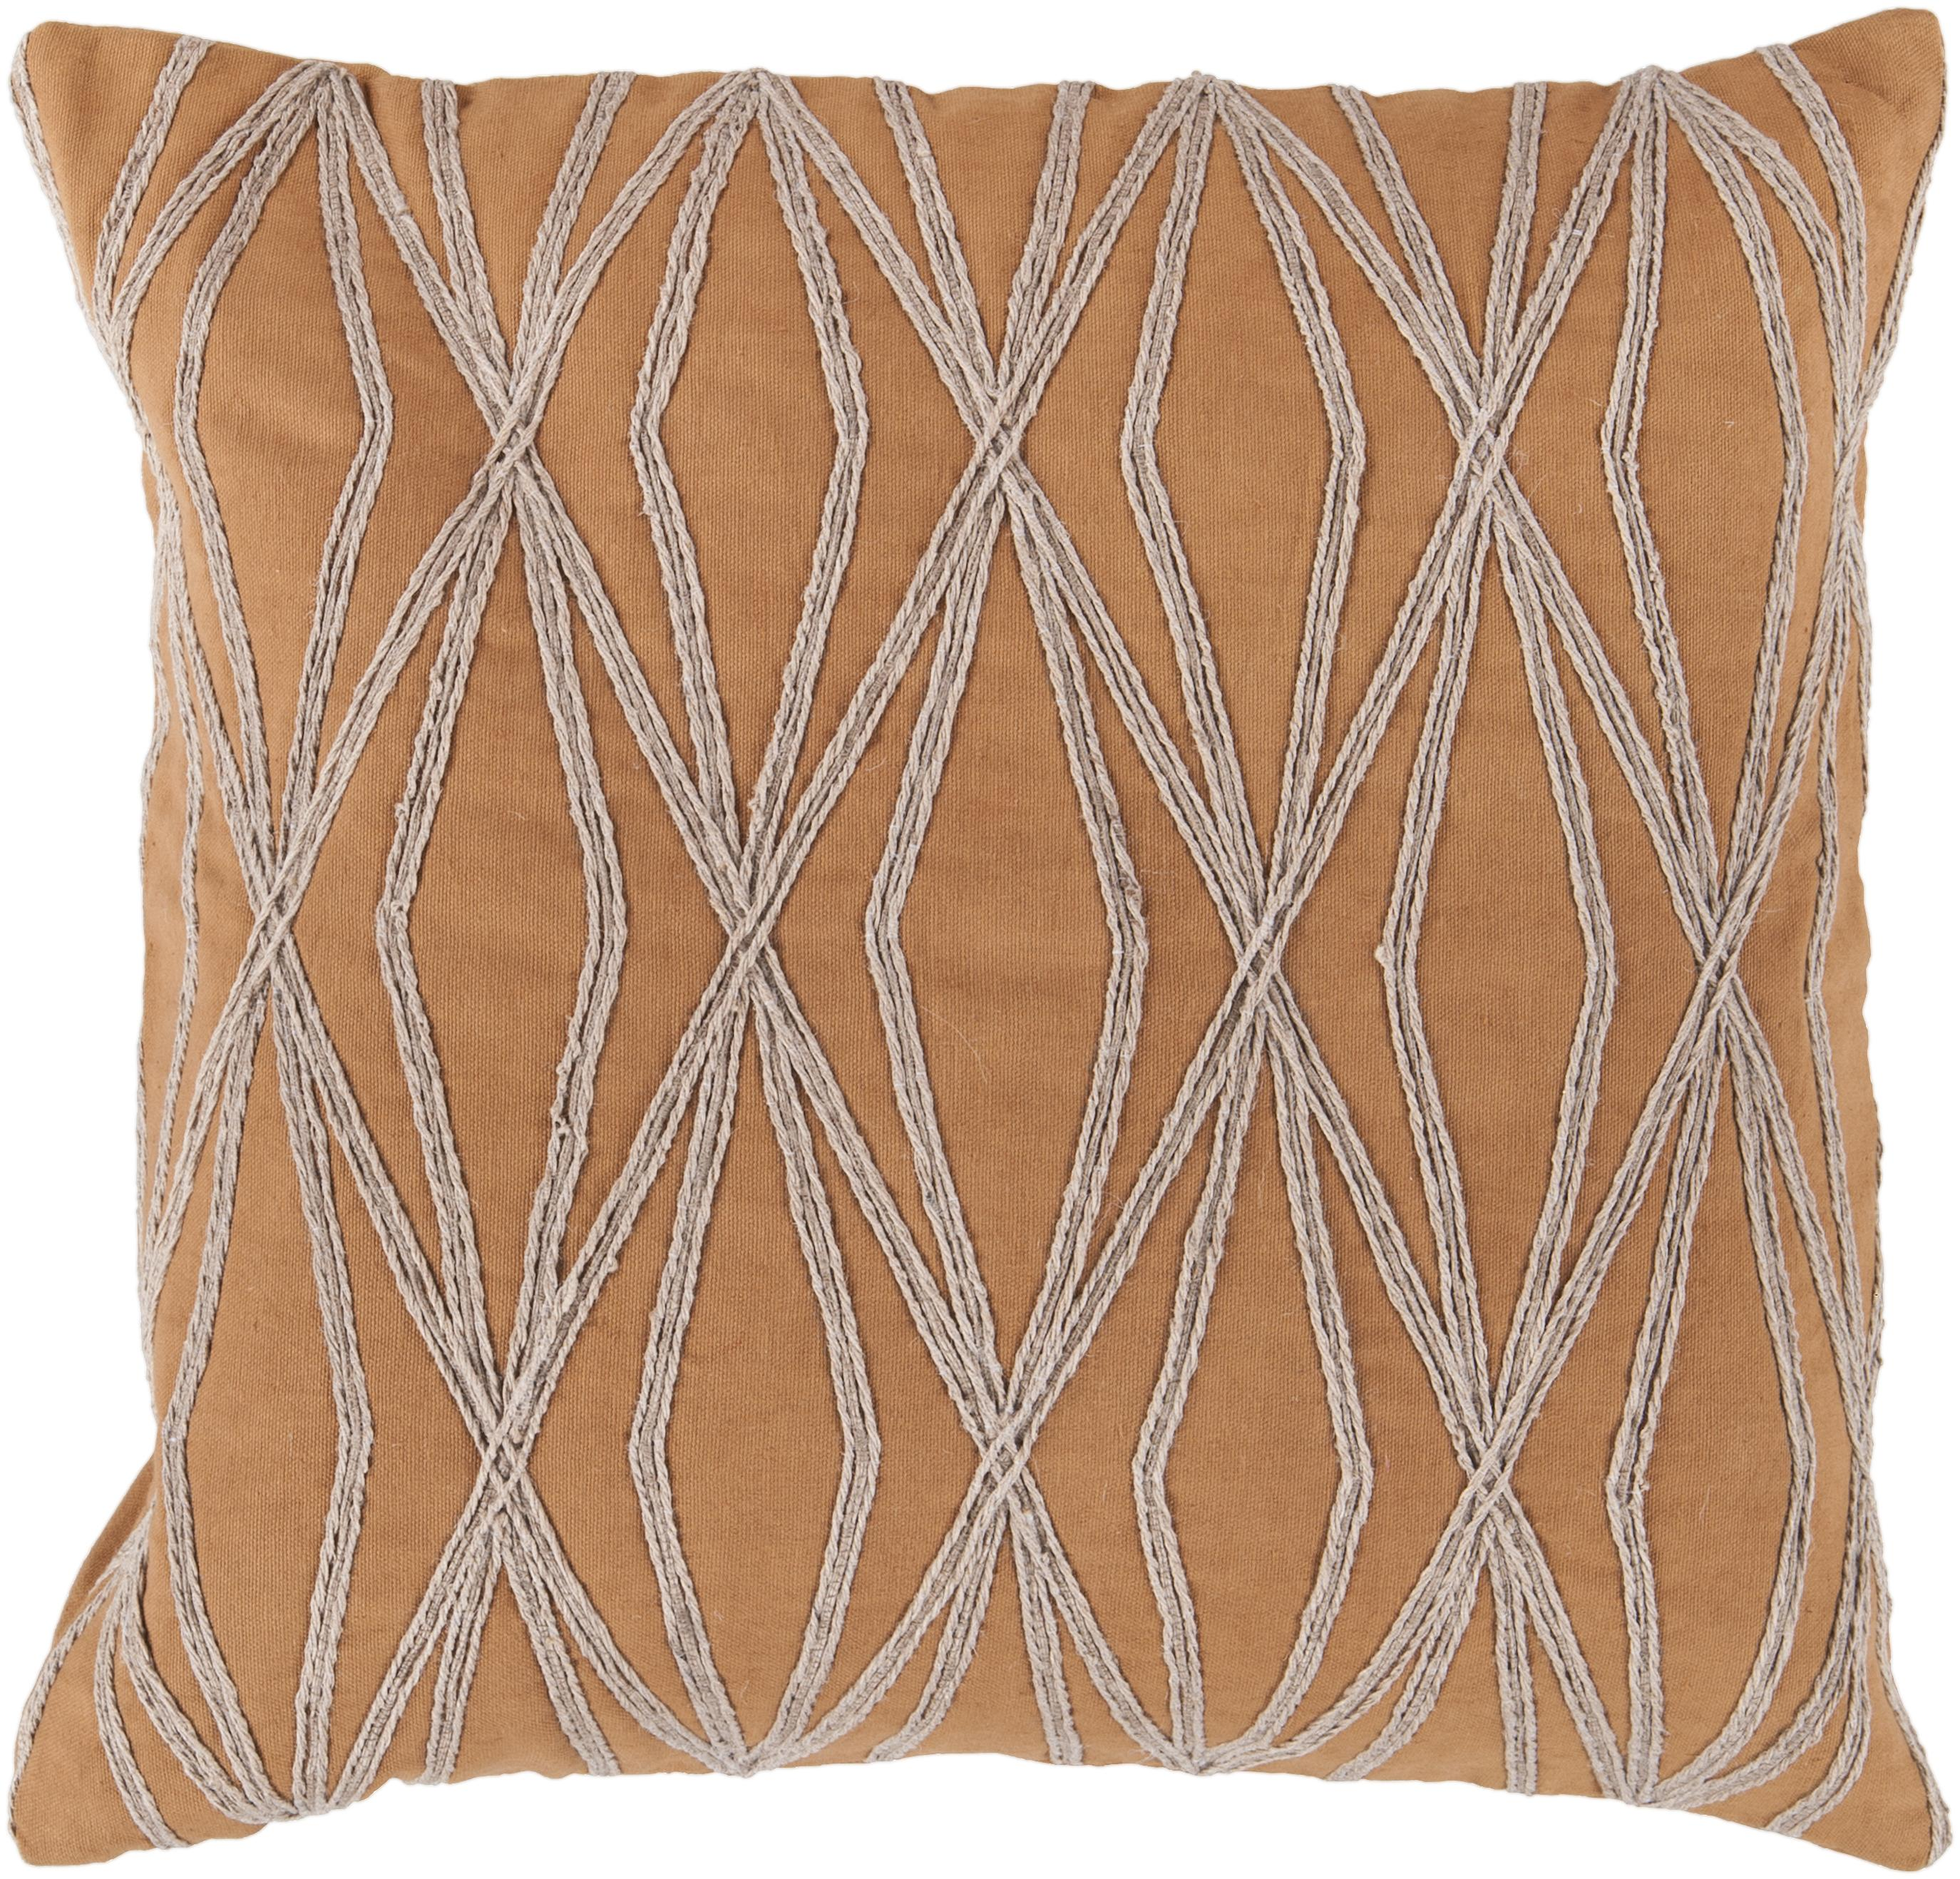 "Surya Pillows 22"" x 22"" Pillow - Item Number: COM024-2222P"